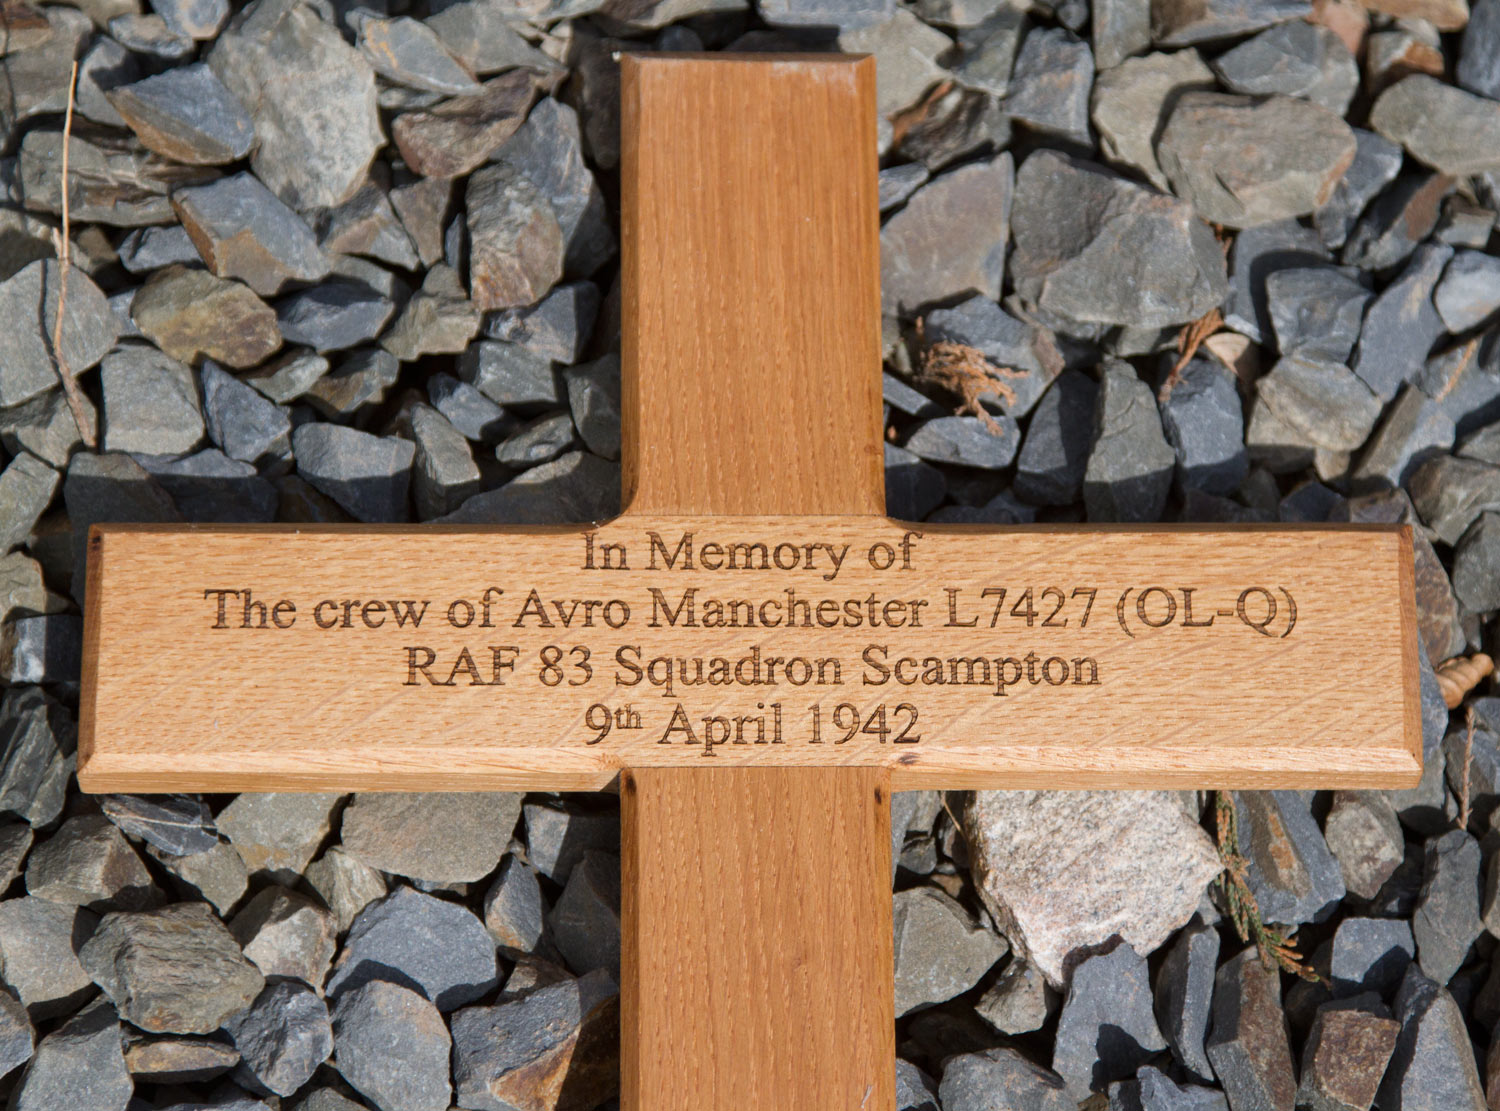 We make them in all kinds of materials  Cast bronze, engraved brass,  granite, slate, solid wood and wooden crosses.  http://www.sign-maker.net/memorial/ ...